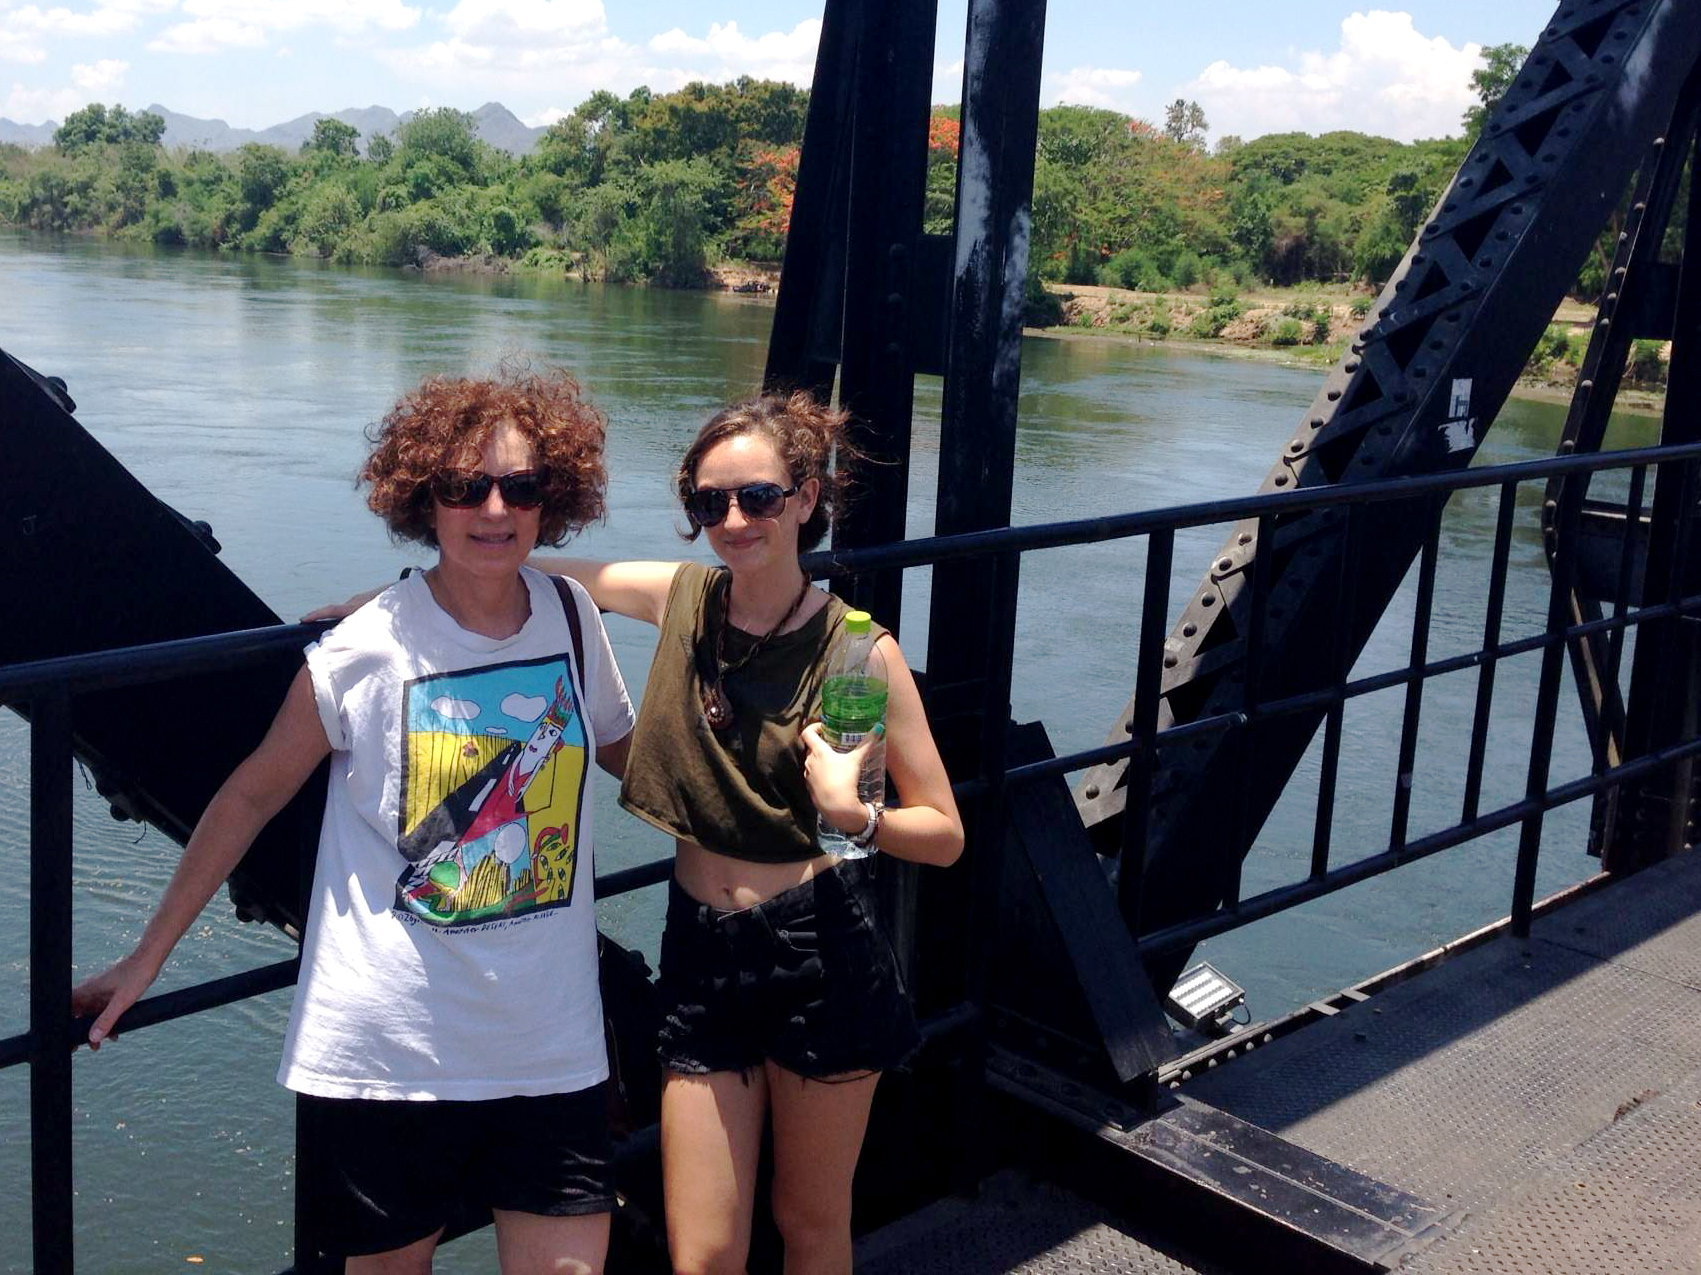 Checking out the Bridge on the River Khwae in Kanchanaburi